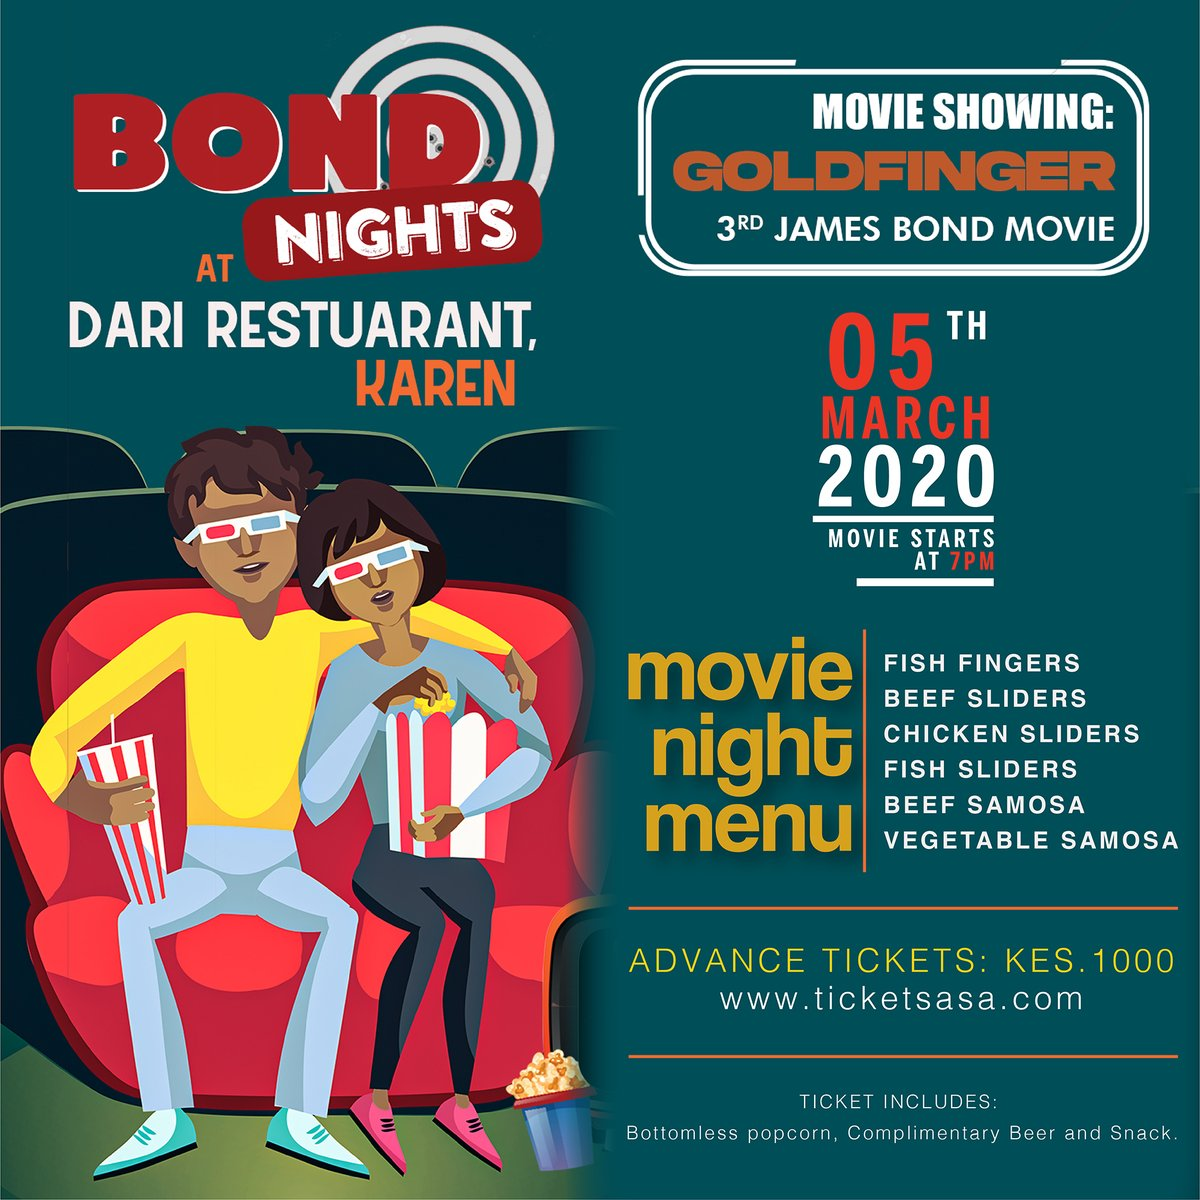 2 days to go! #Bondnights at #Dari. Get your ticket today from @ticketsasa for the showing of #JamesBond's #Goldfinger on Kenya's largest outdoor screen.   Kes.1000, gets you a Ticket, Bottomless popcorn, Complimentary Beer and a Snack.  #DariRestaurant – 165 Ngong Road, Karenpic.twitter.com/omYRDMObZS